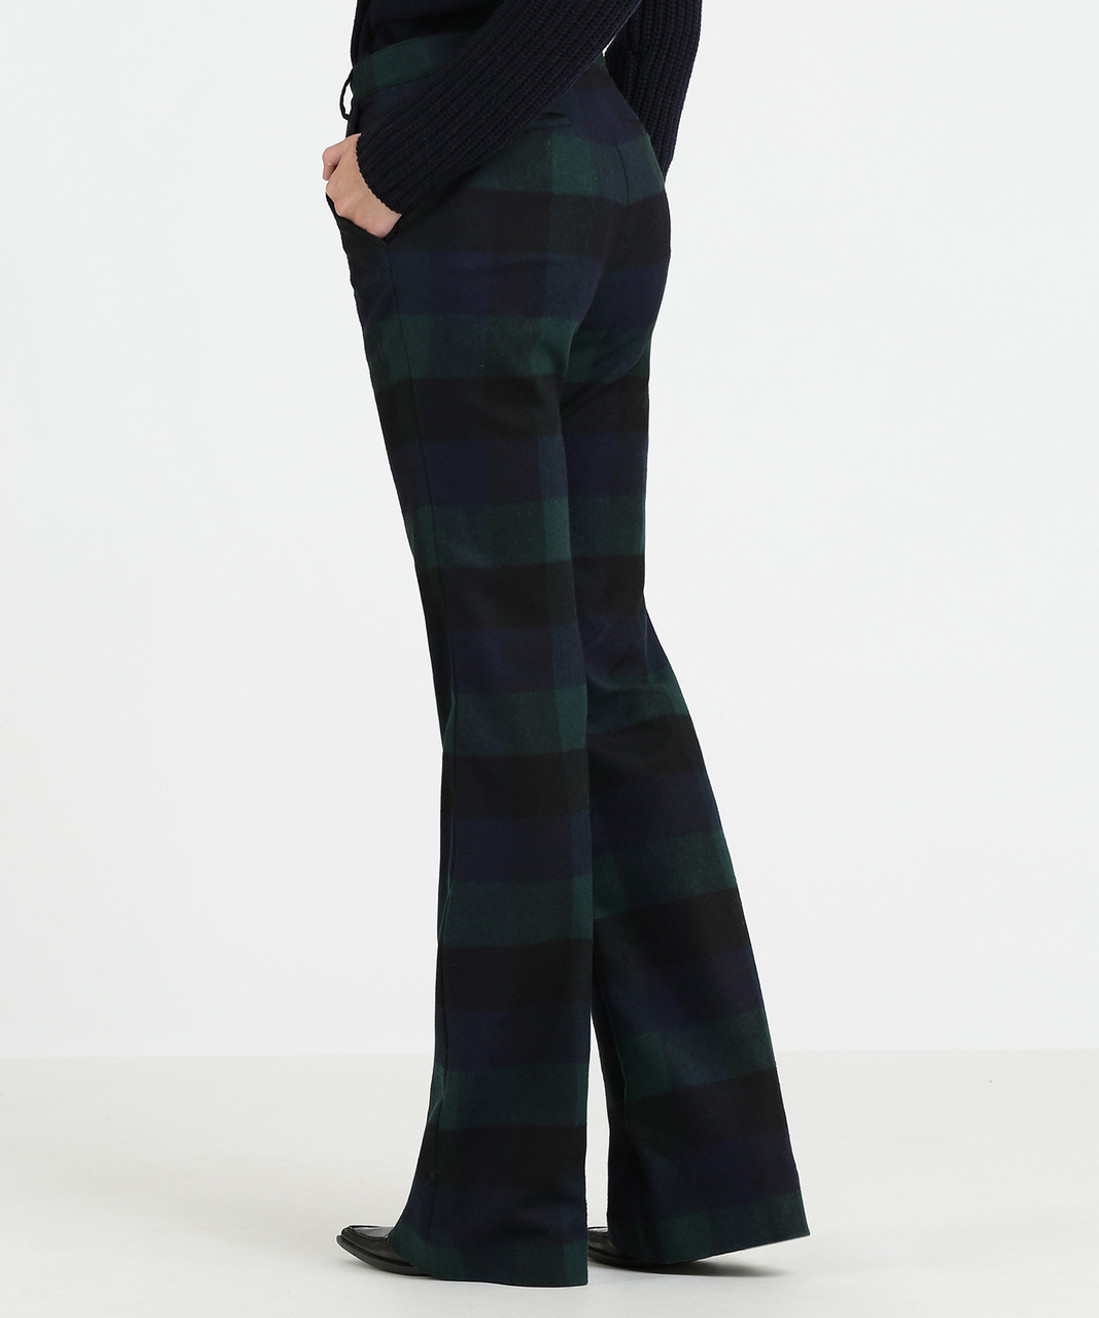 Women's Stretch Wool Bootcut Pants - John Rich & Bros.